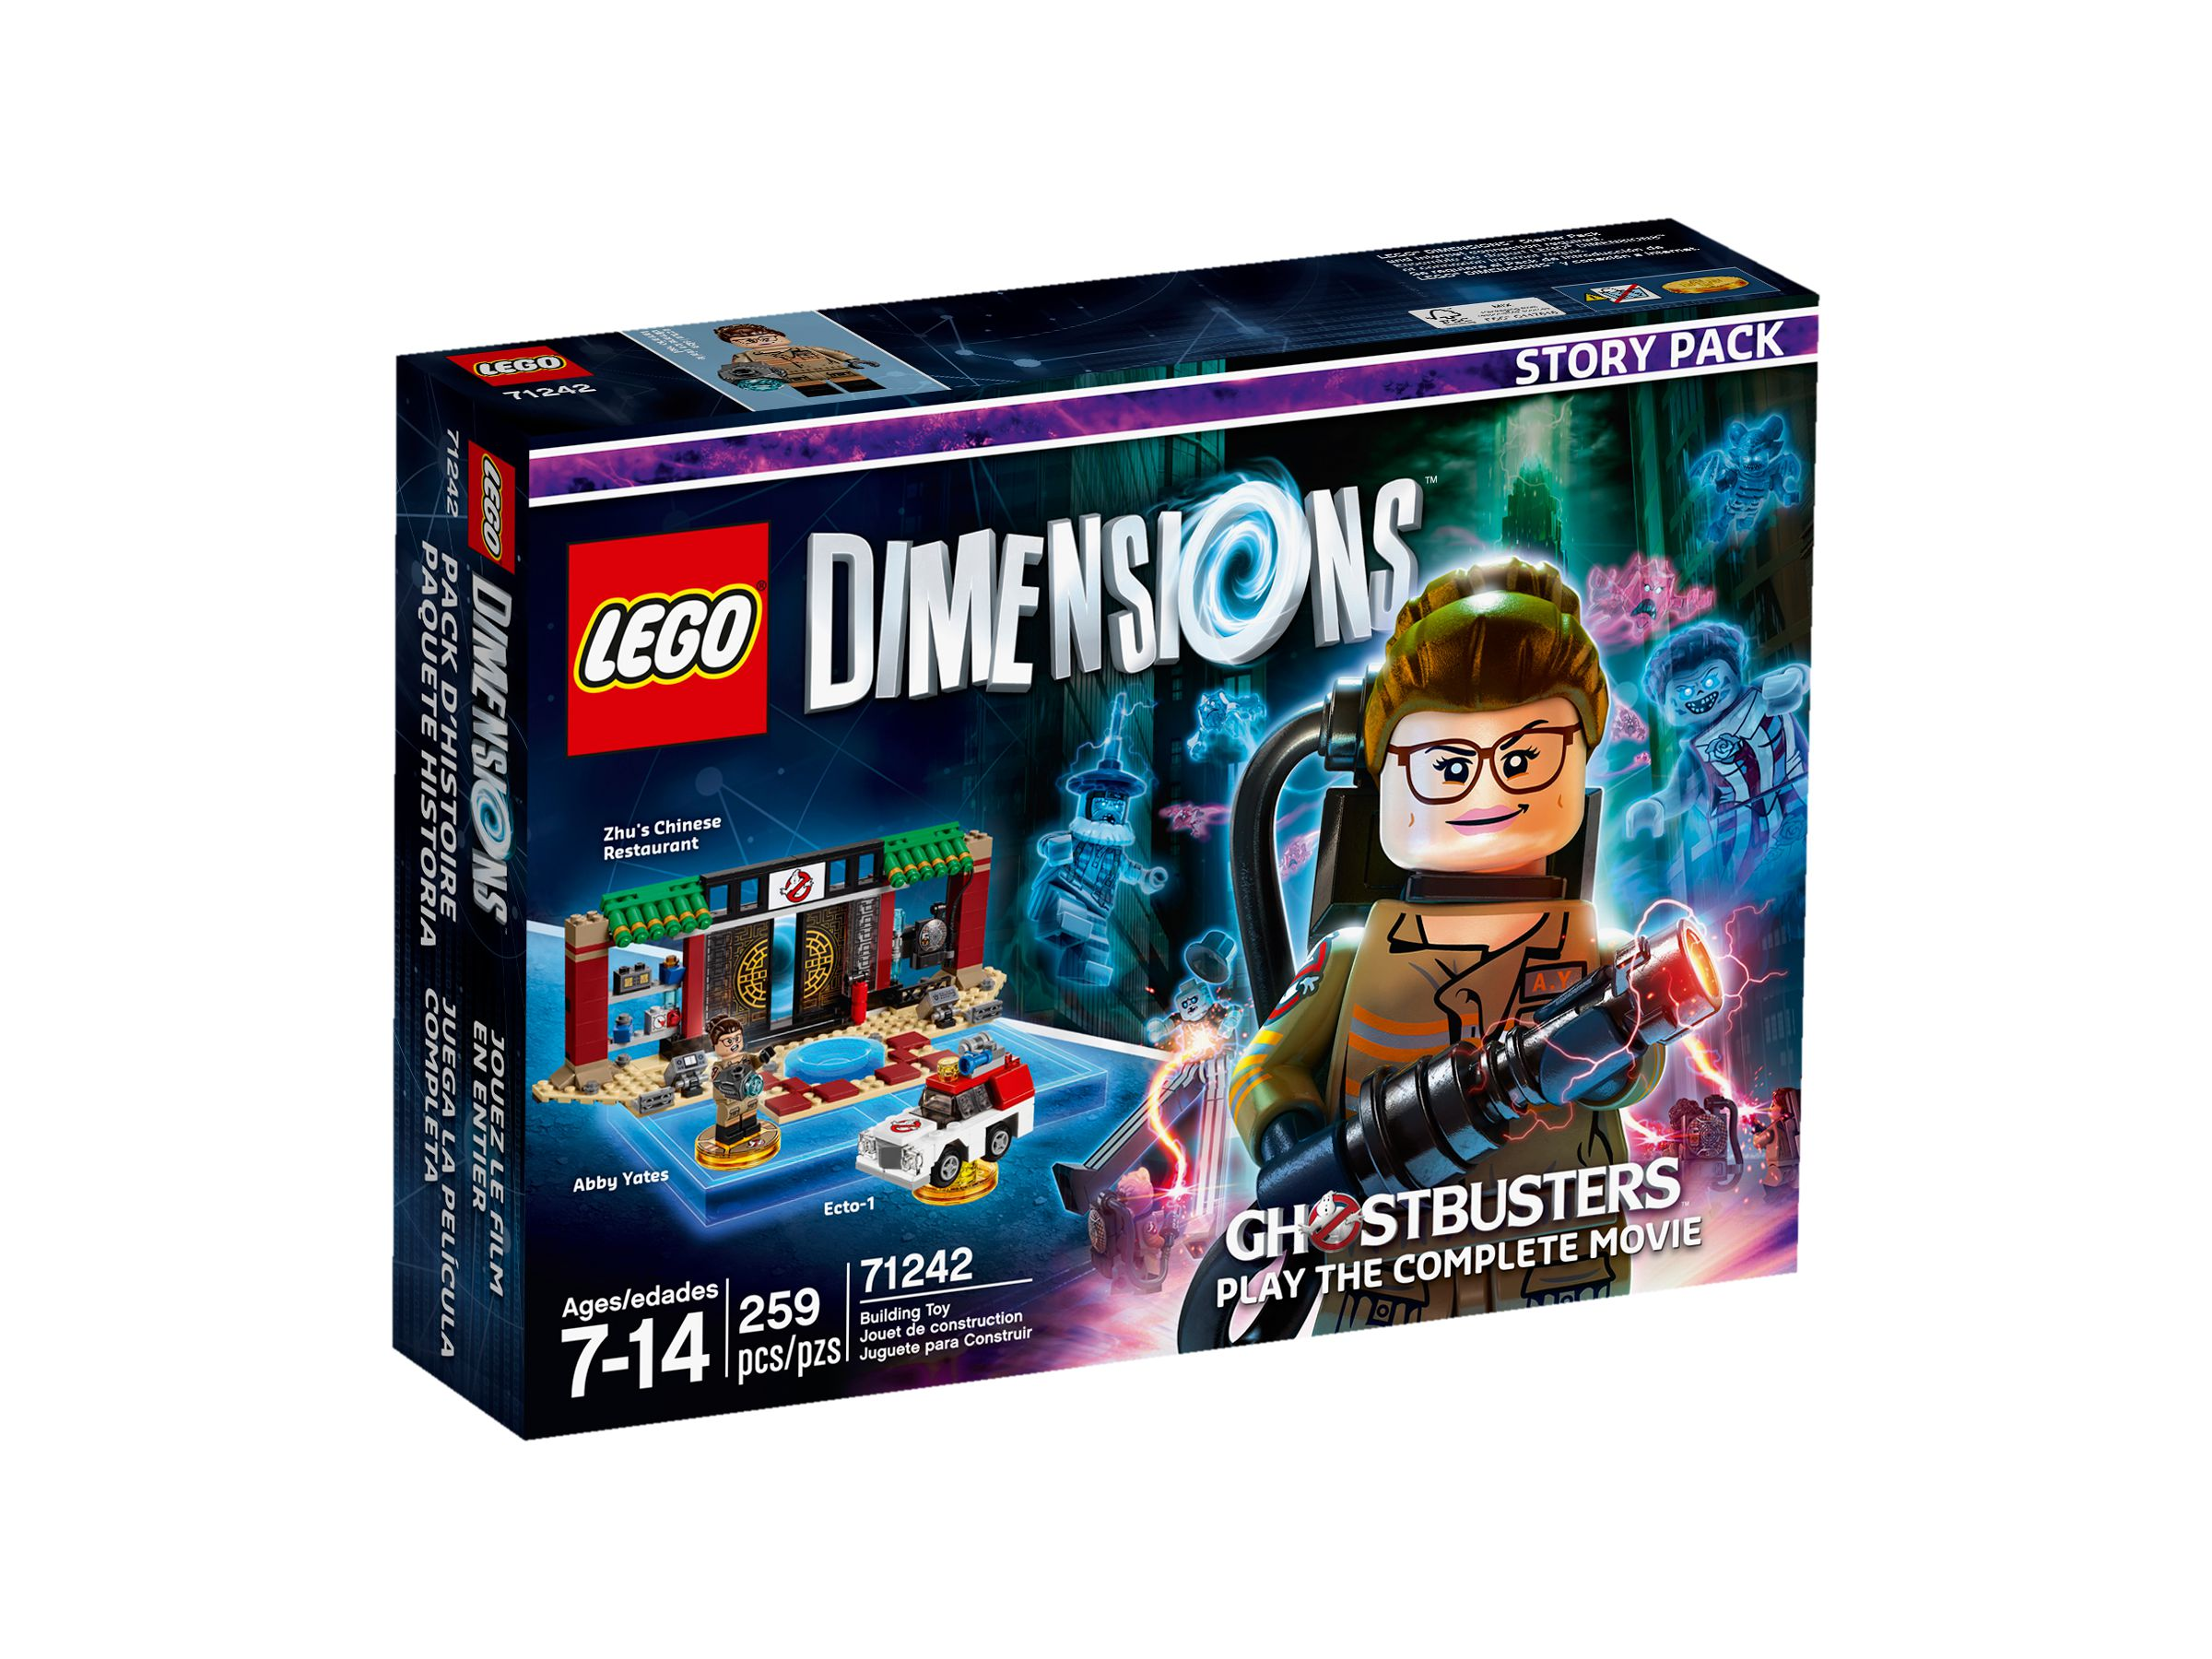 LEGO Dimensions 71242 Story Pack New Ghostbusters LEGO_71242_alt1.jpg